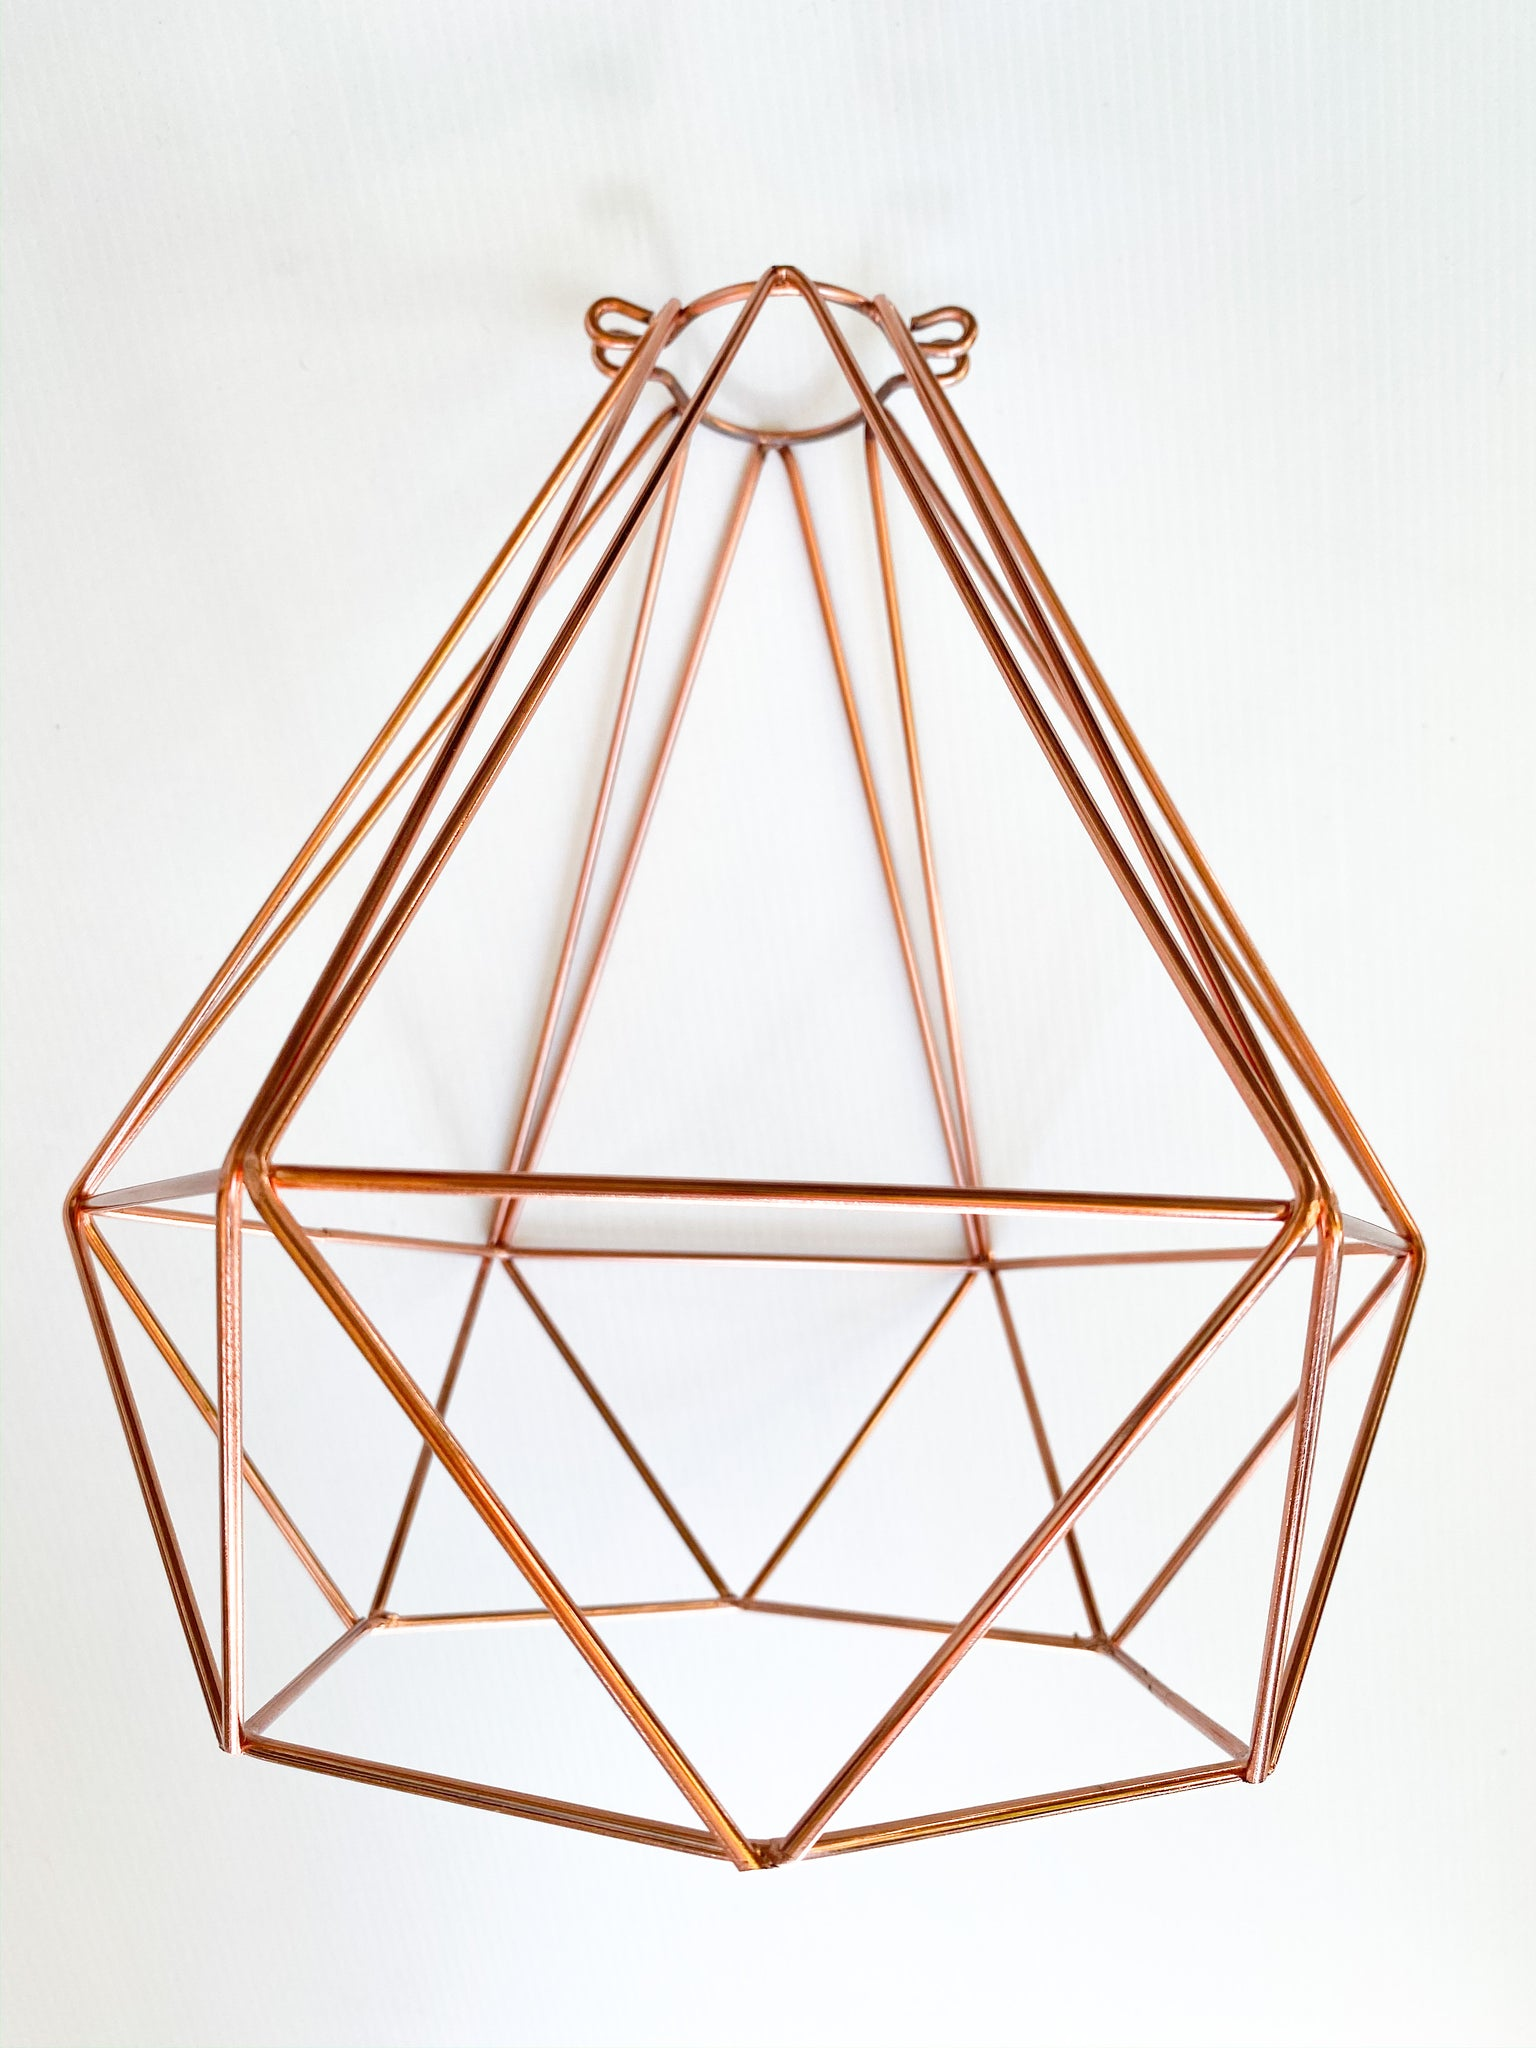 SAMPLE Diamond Cage (cage only)